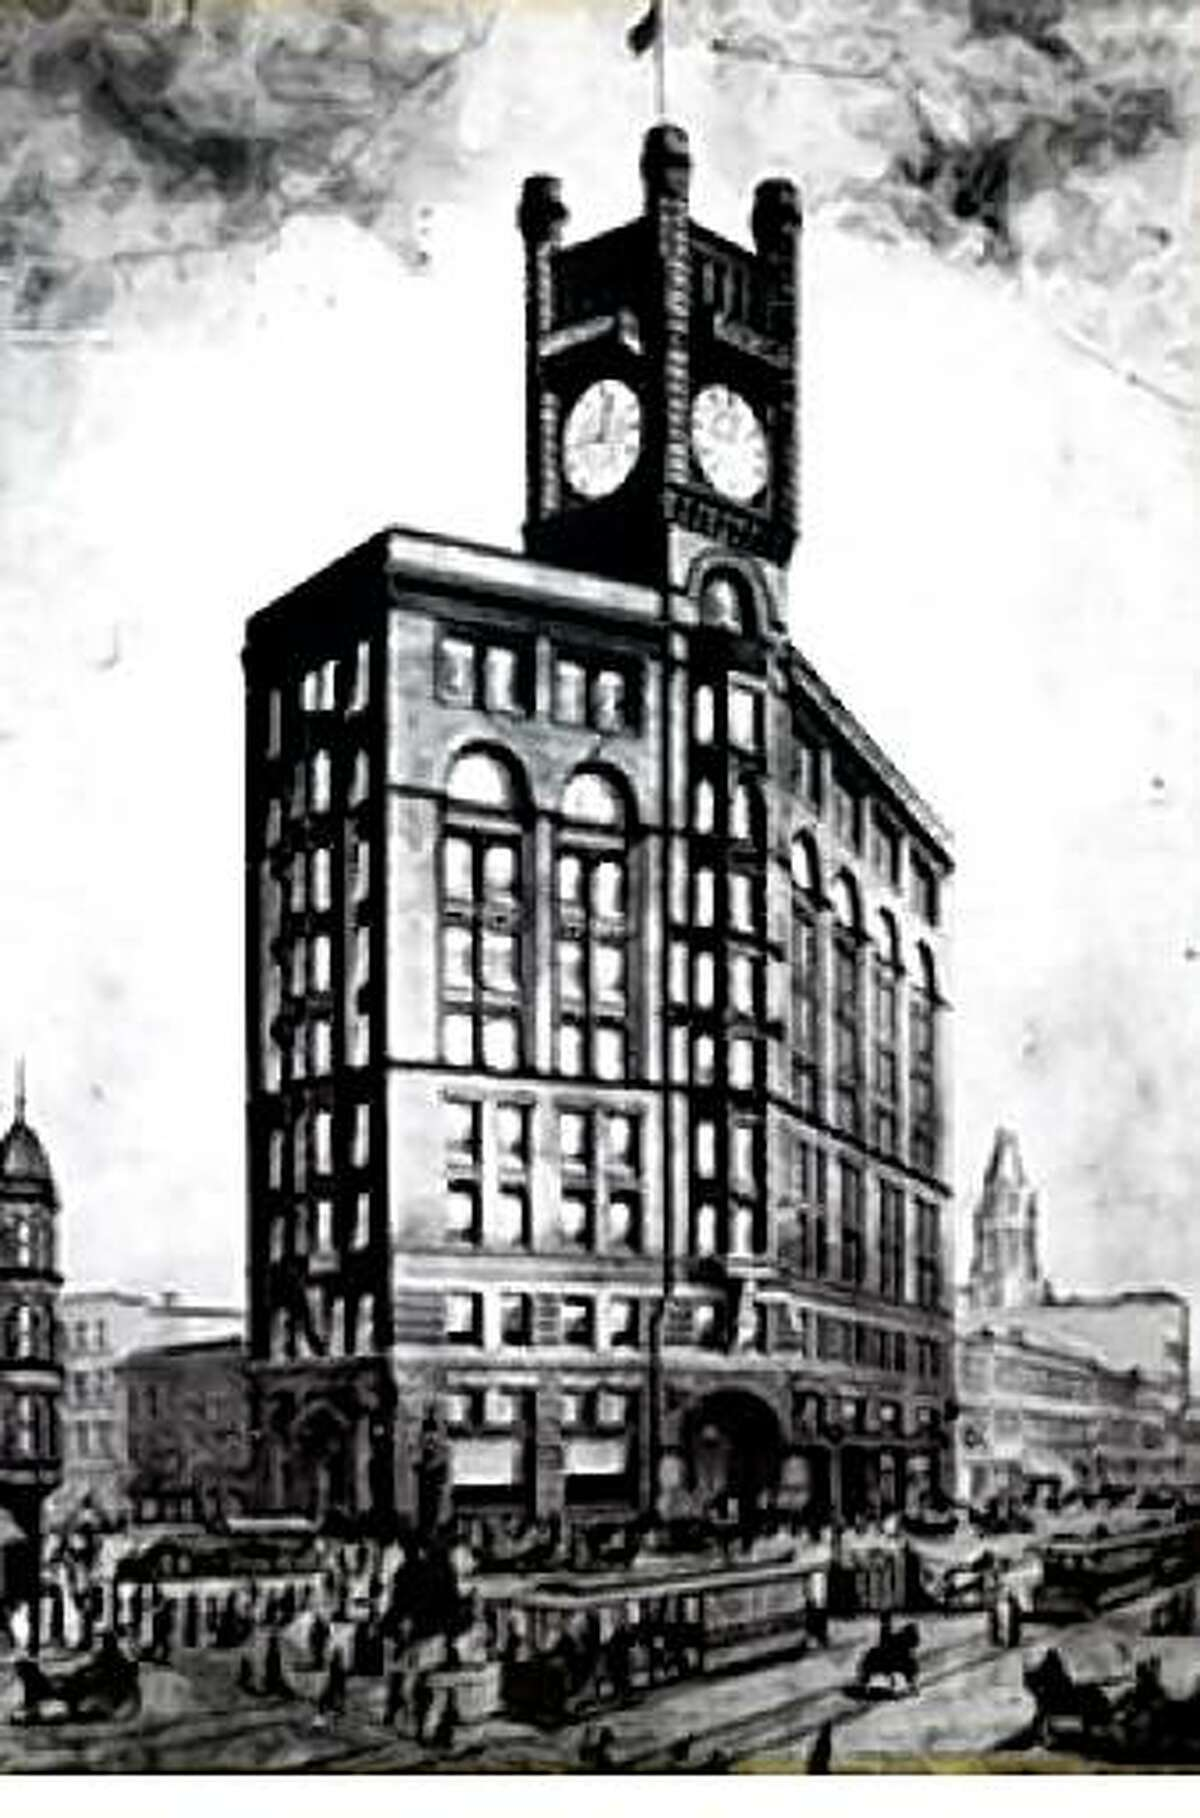 Original 1890's Chronicle building located at 690 Market St. by famous Chicago architectural firm Burnham & Root